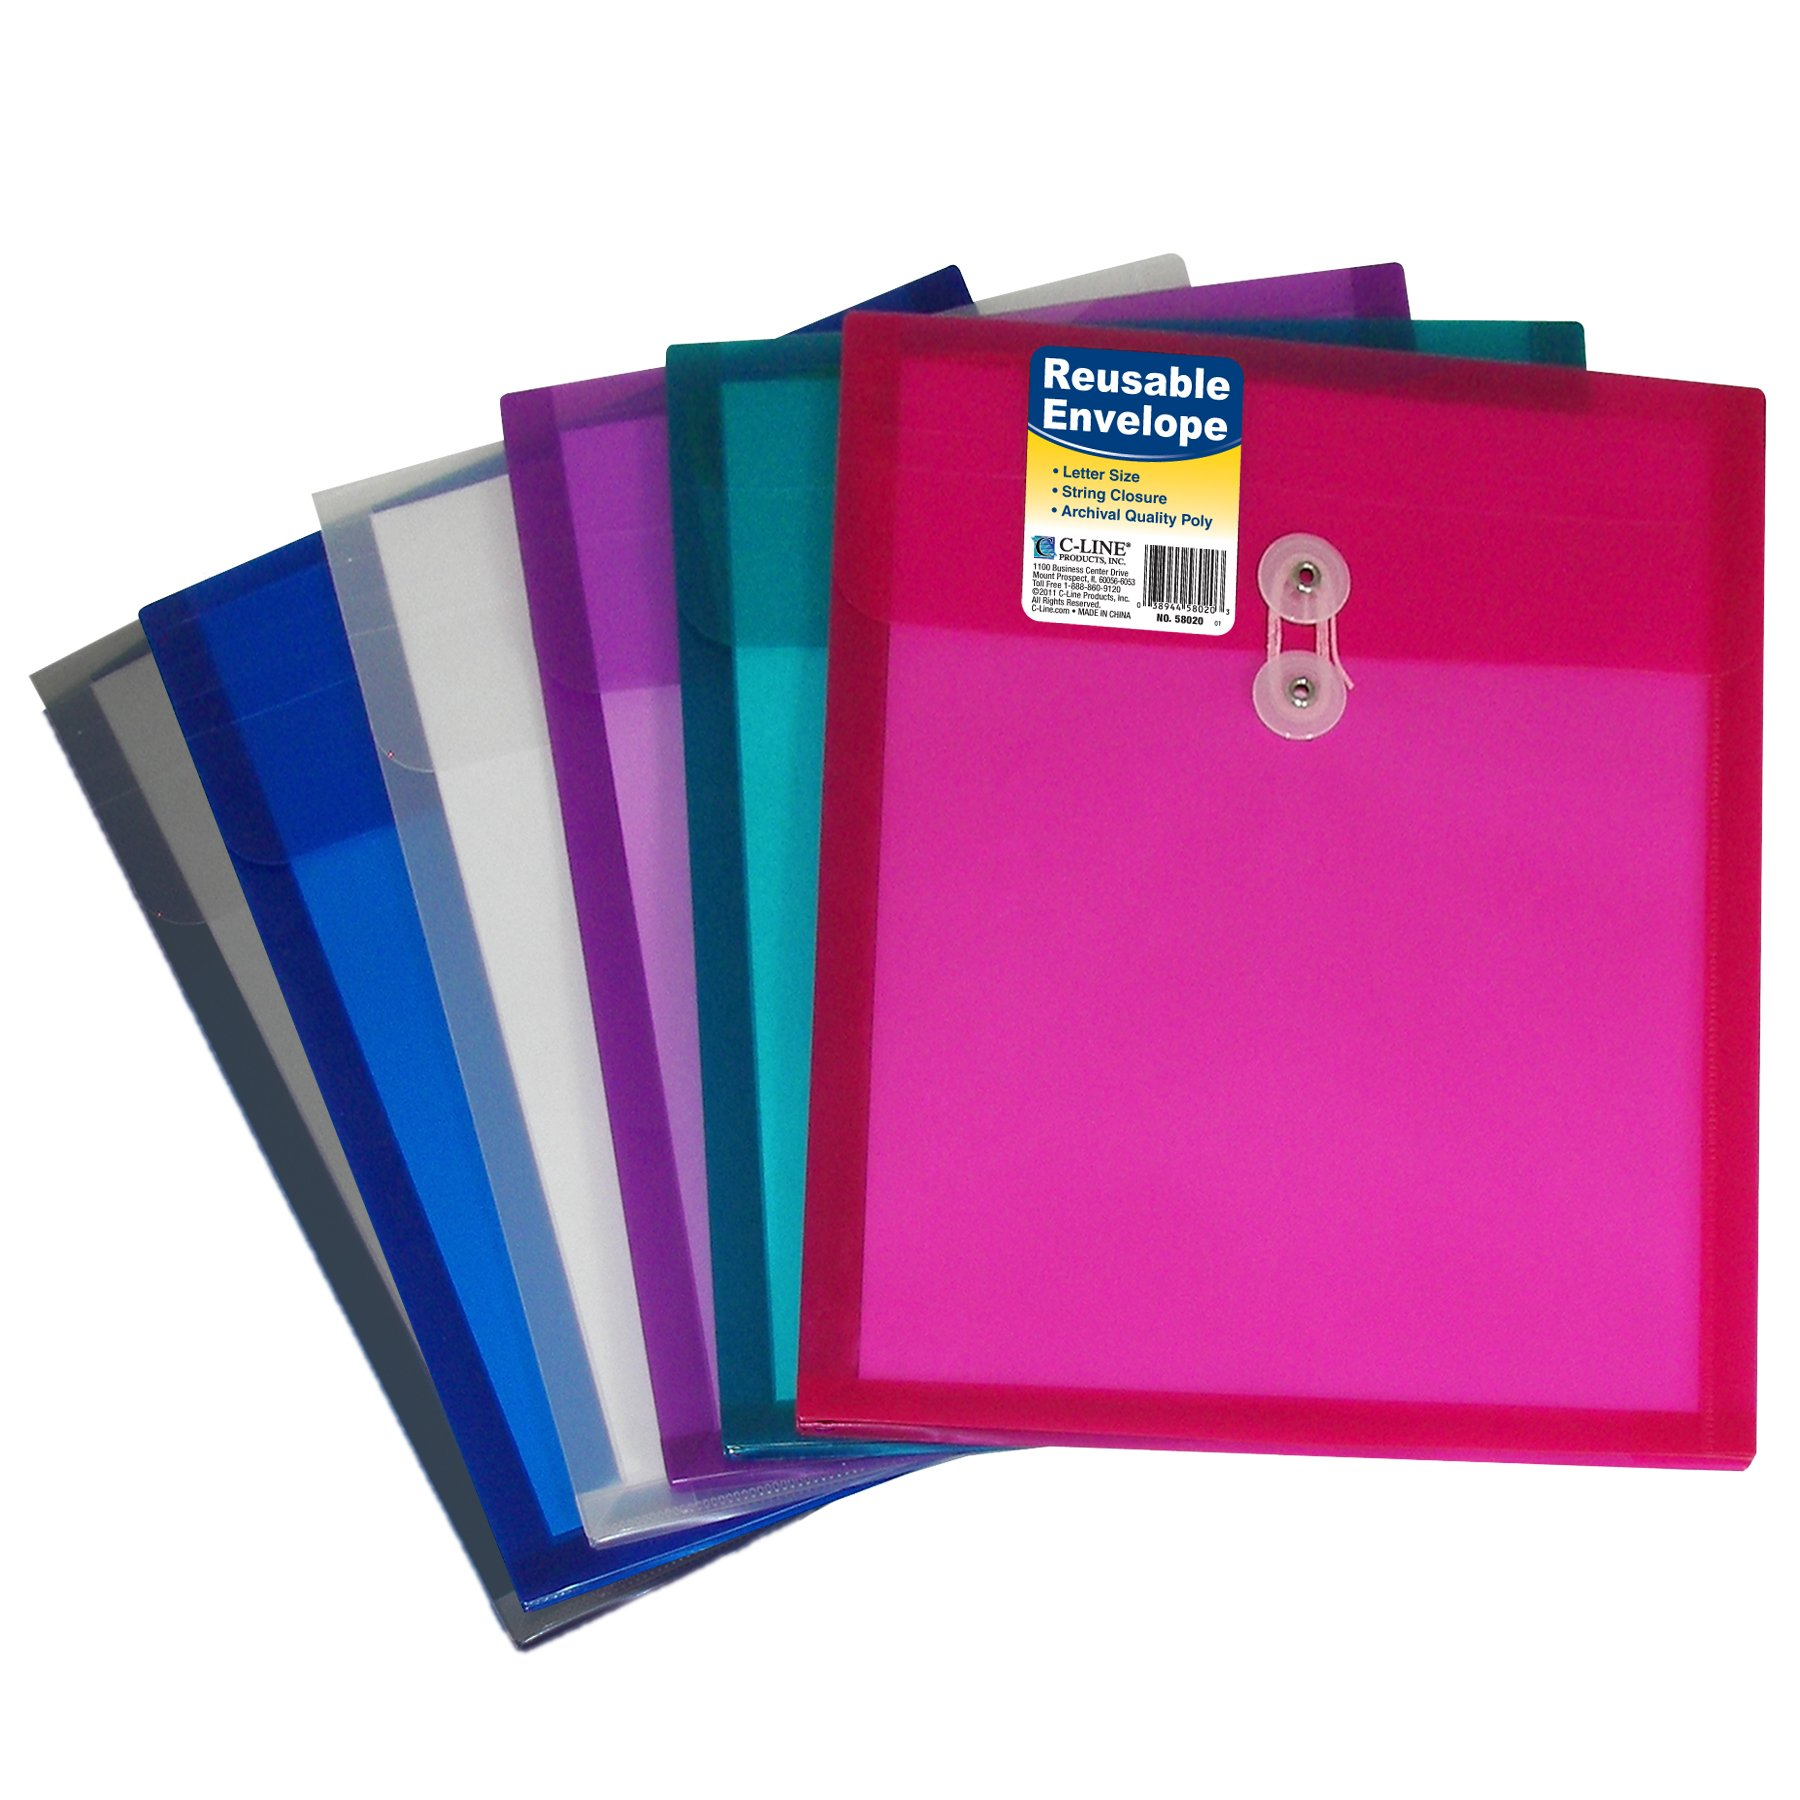 C-Line Reusable Poly Envelope with String Closure, 1-Inch Gusset, Top Load, Letter Size, Pack of 24 Envelopes, Assorted Colors (58020-24)